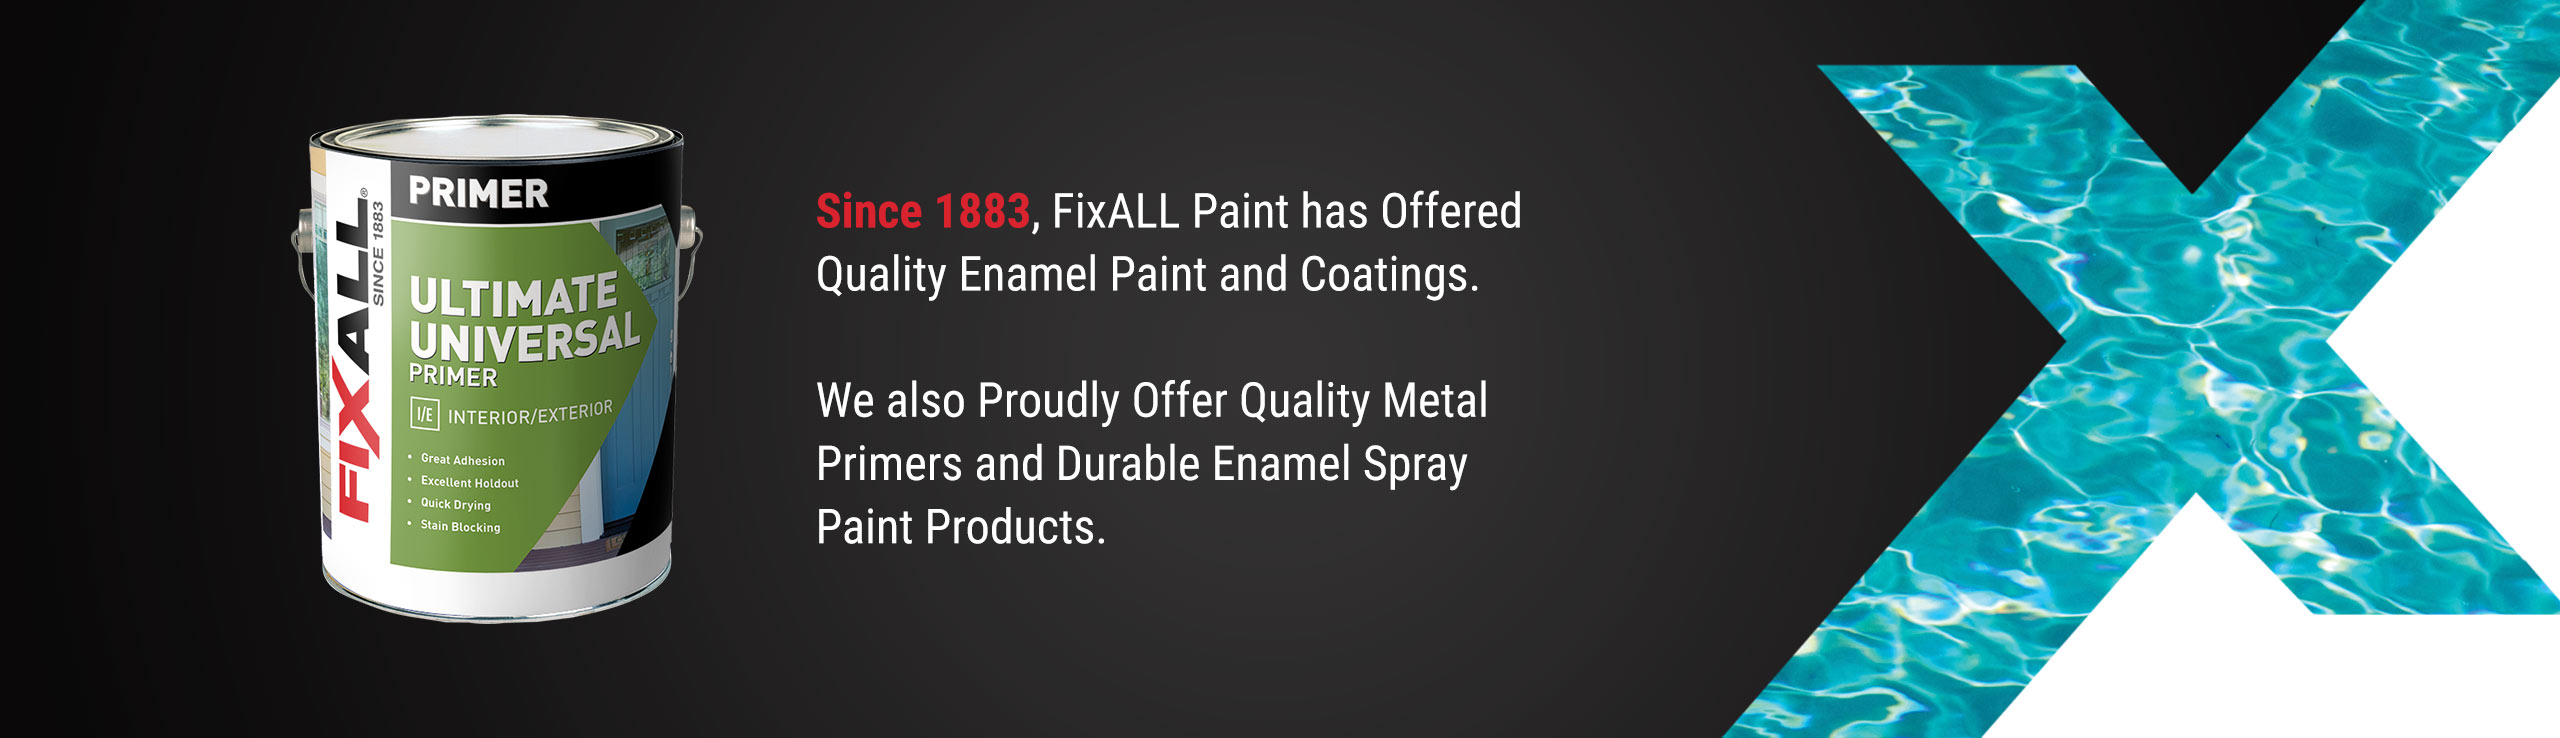 100 primer paint wikipedia new acrylic vs latex for Best brand of paint for kitchen cabinets with papiers peints de luxe